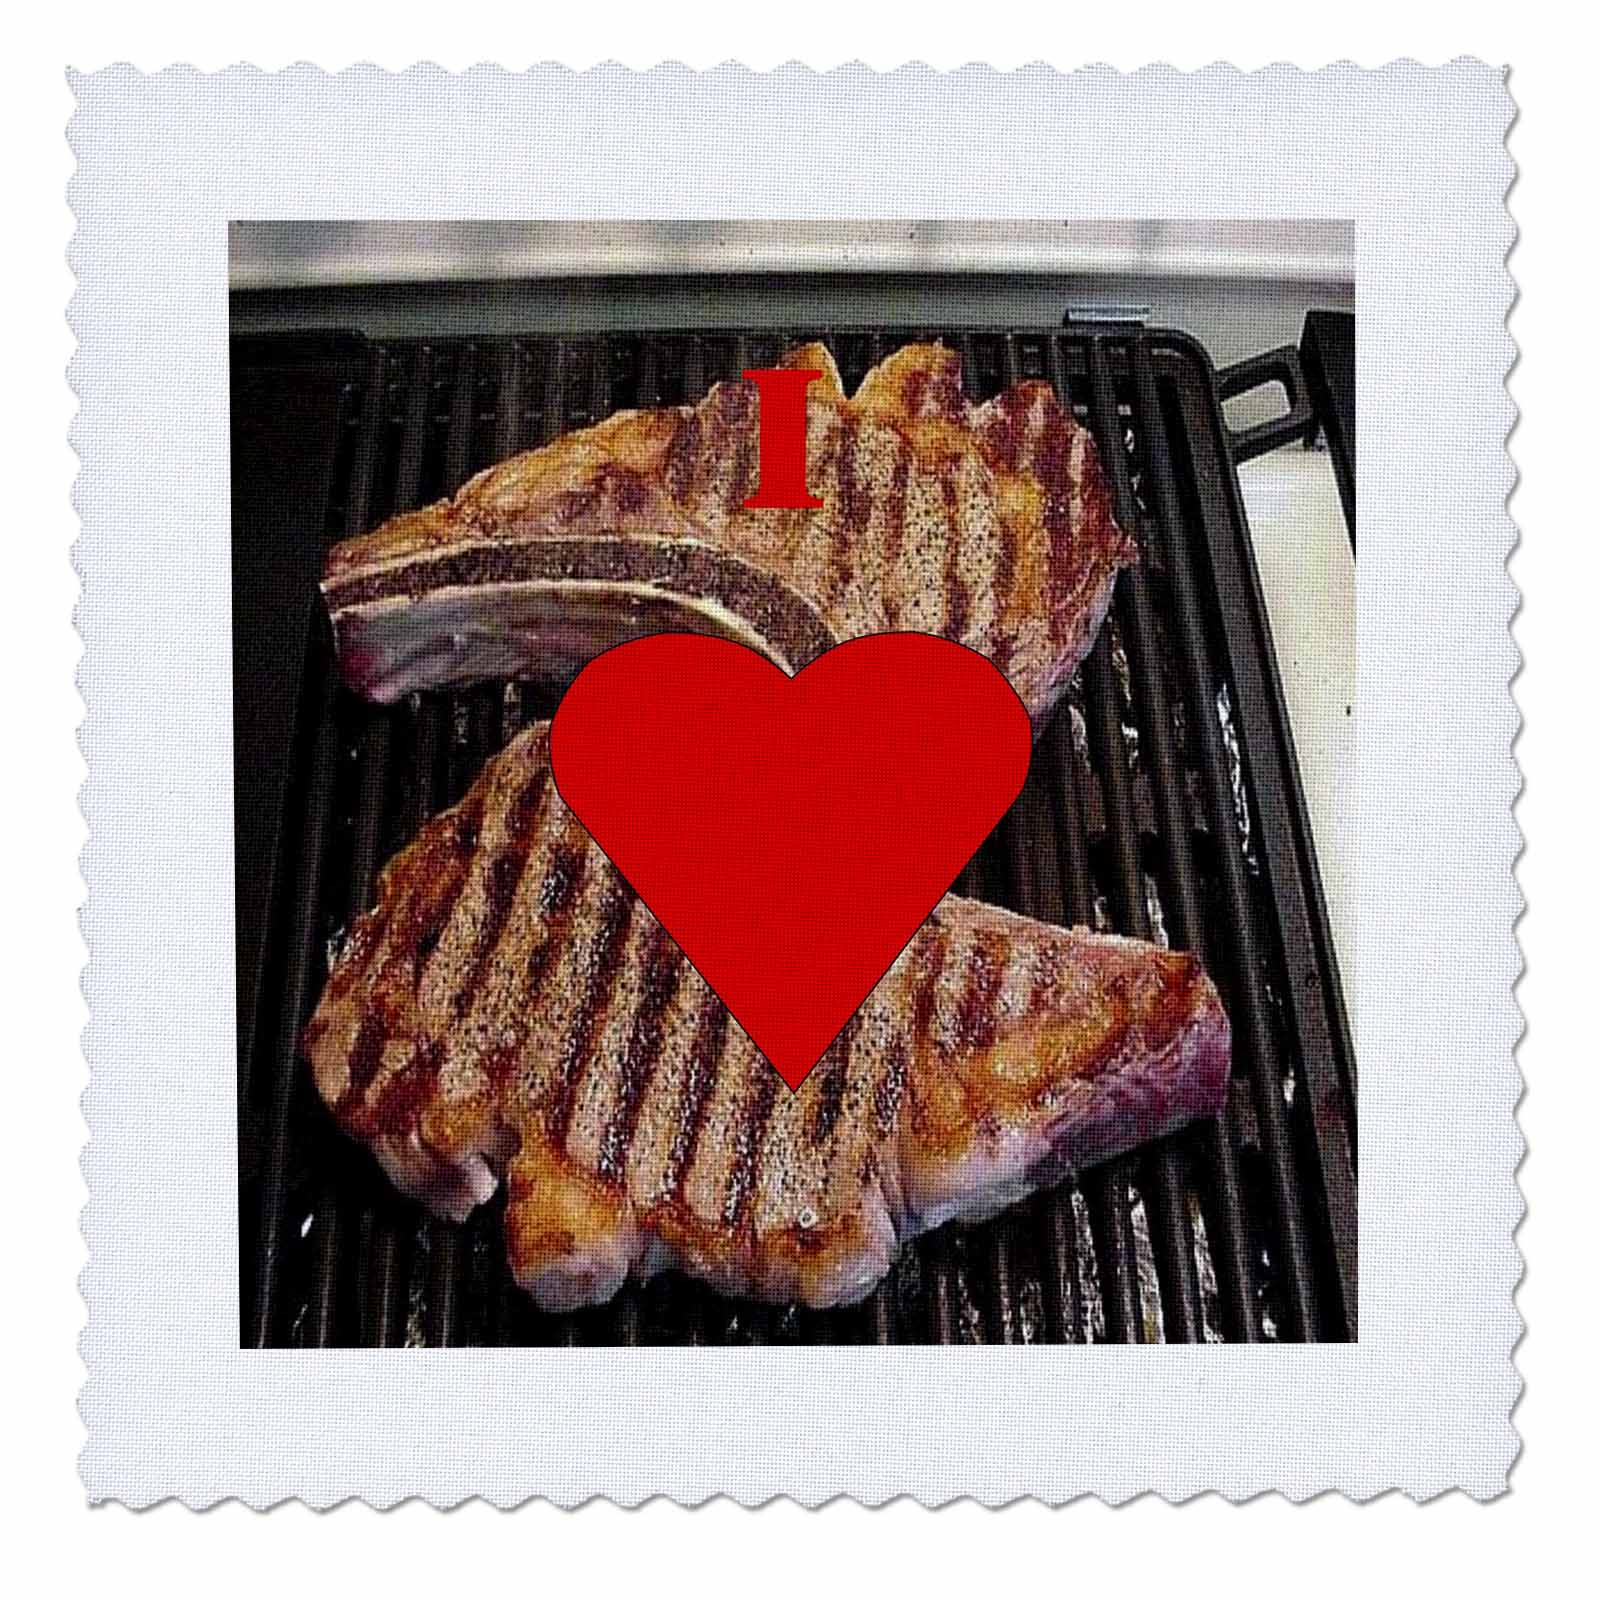 3dRose I Love Steak - Quilt Square, 8 by 8-inch